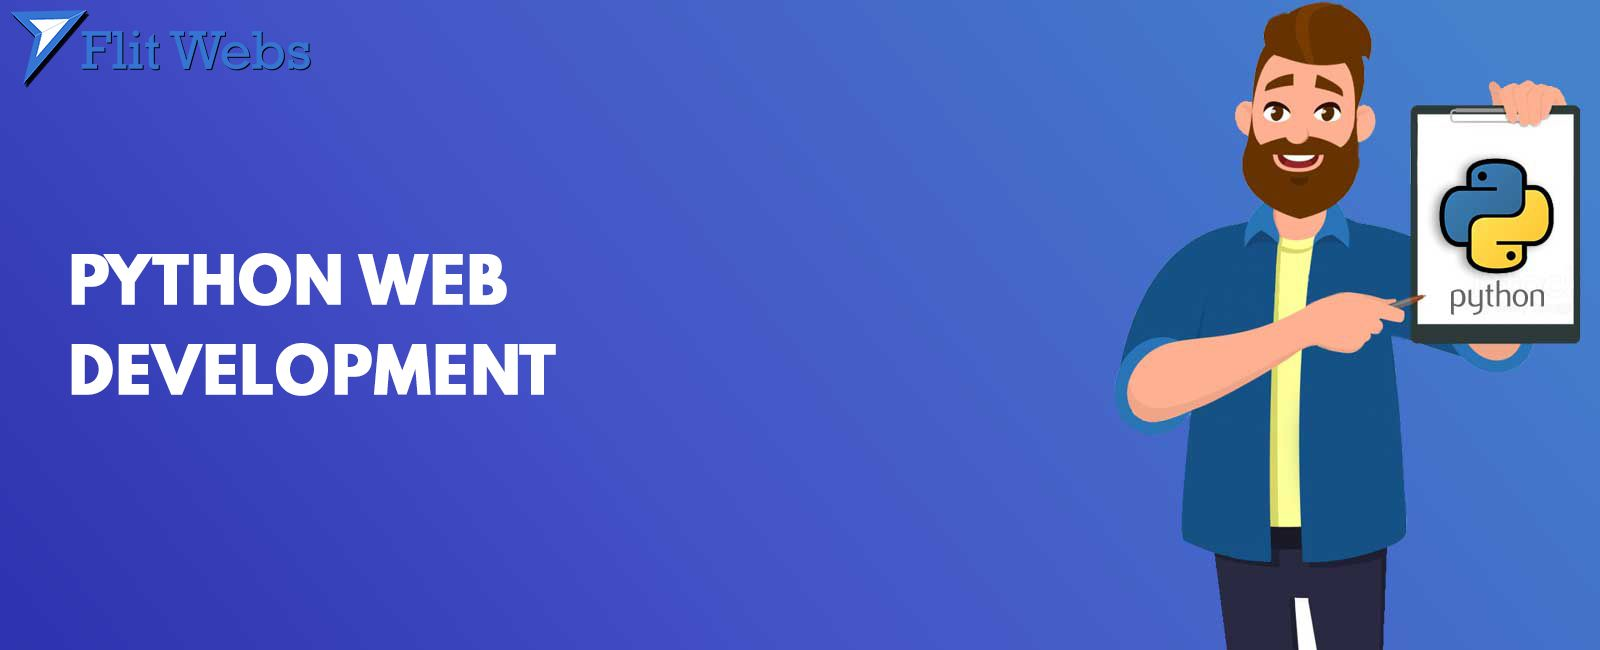 Watch Your Web Applications Transcend Your Imagination With Flit Webs Bespoke Python Web Development Services Python Web Web Development Development